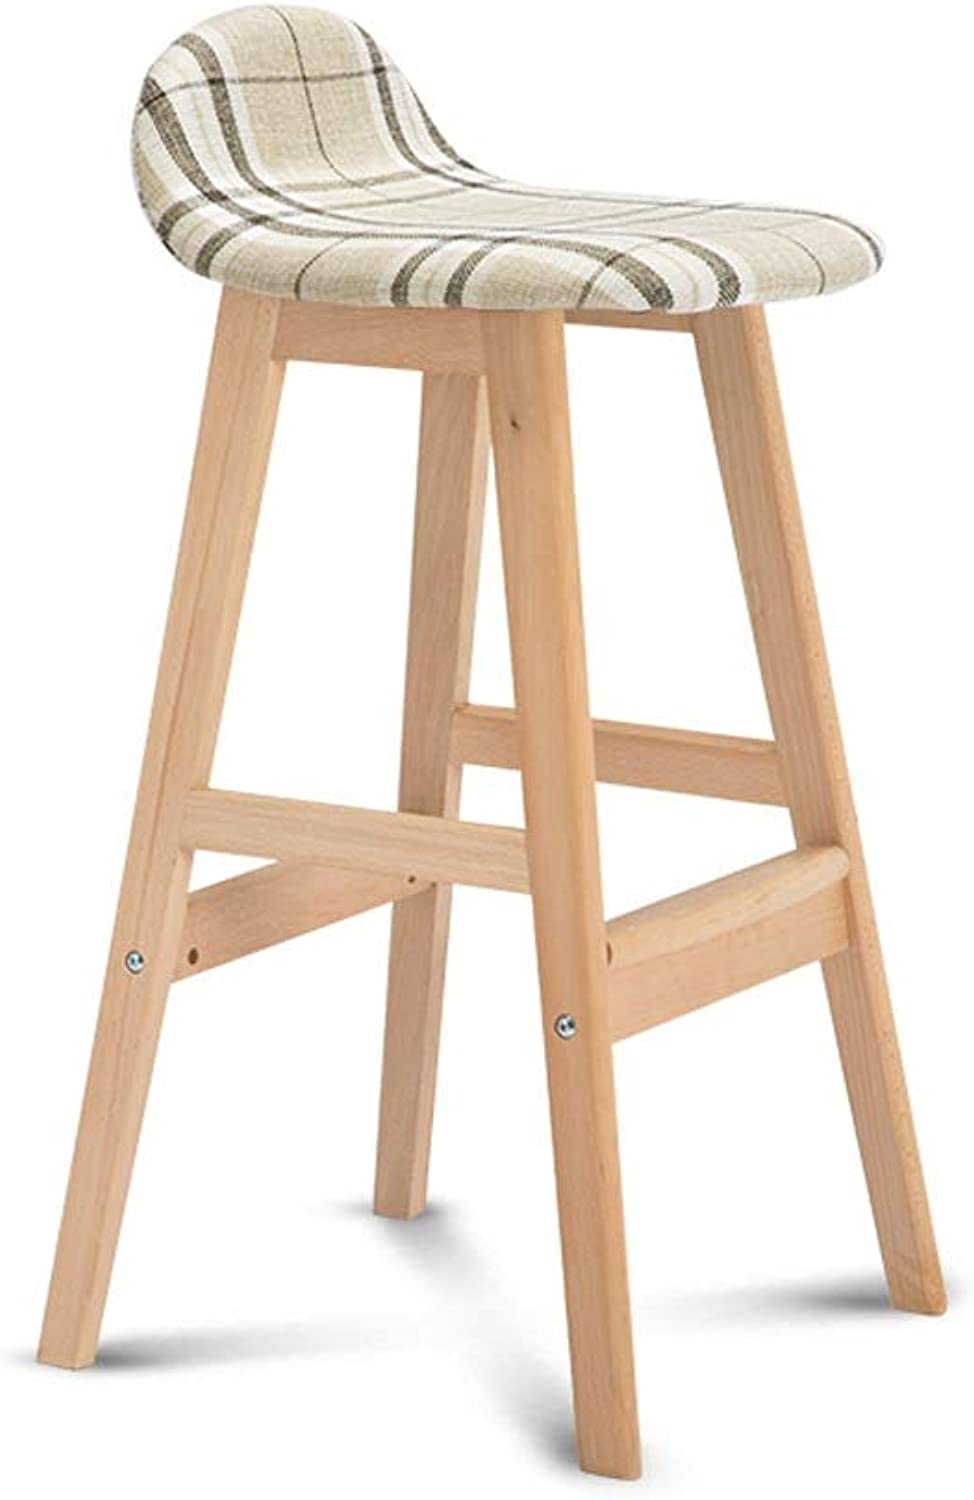 WBBJBD Modern Bar Stool Set, Wooden Footstool and Breakfast Bar, Counter, Kitchen and Home Bar Stool (color   A, Size   One)